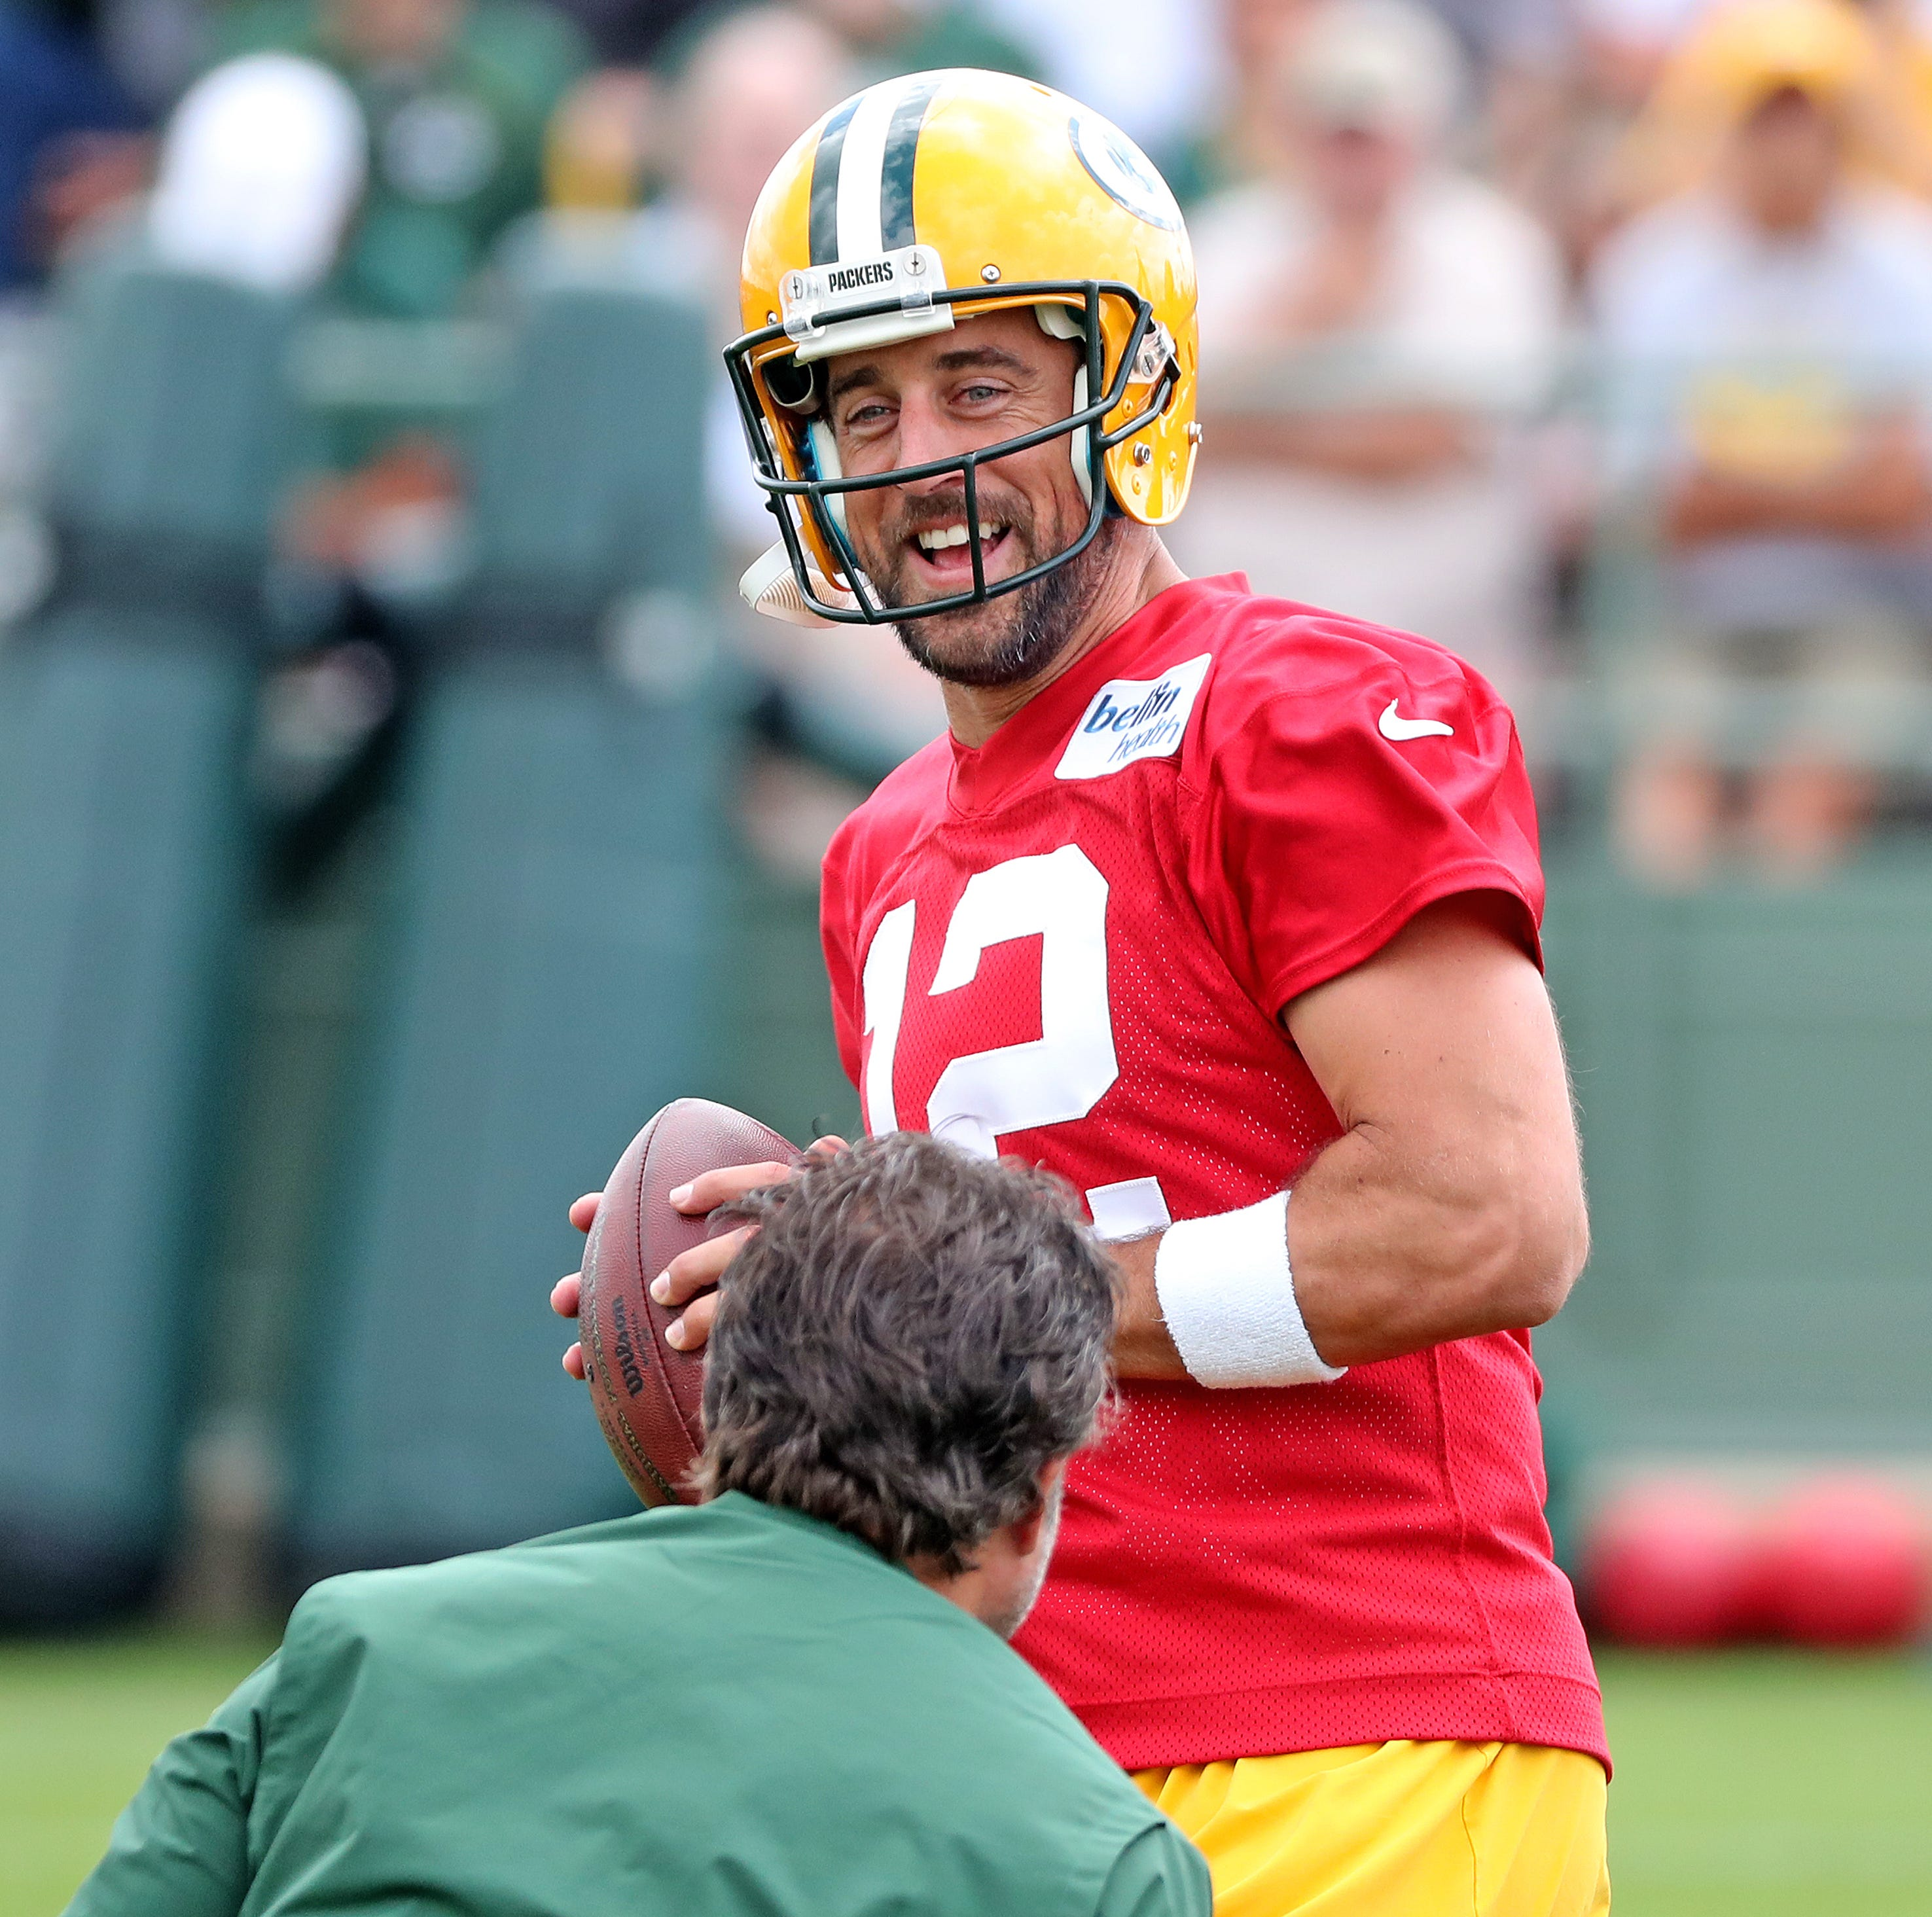 Dougherty: Matt LaFleur must decide who best to work with Aaron Rodgers